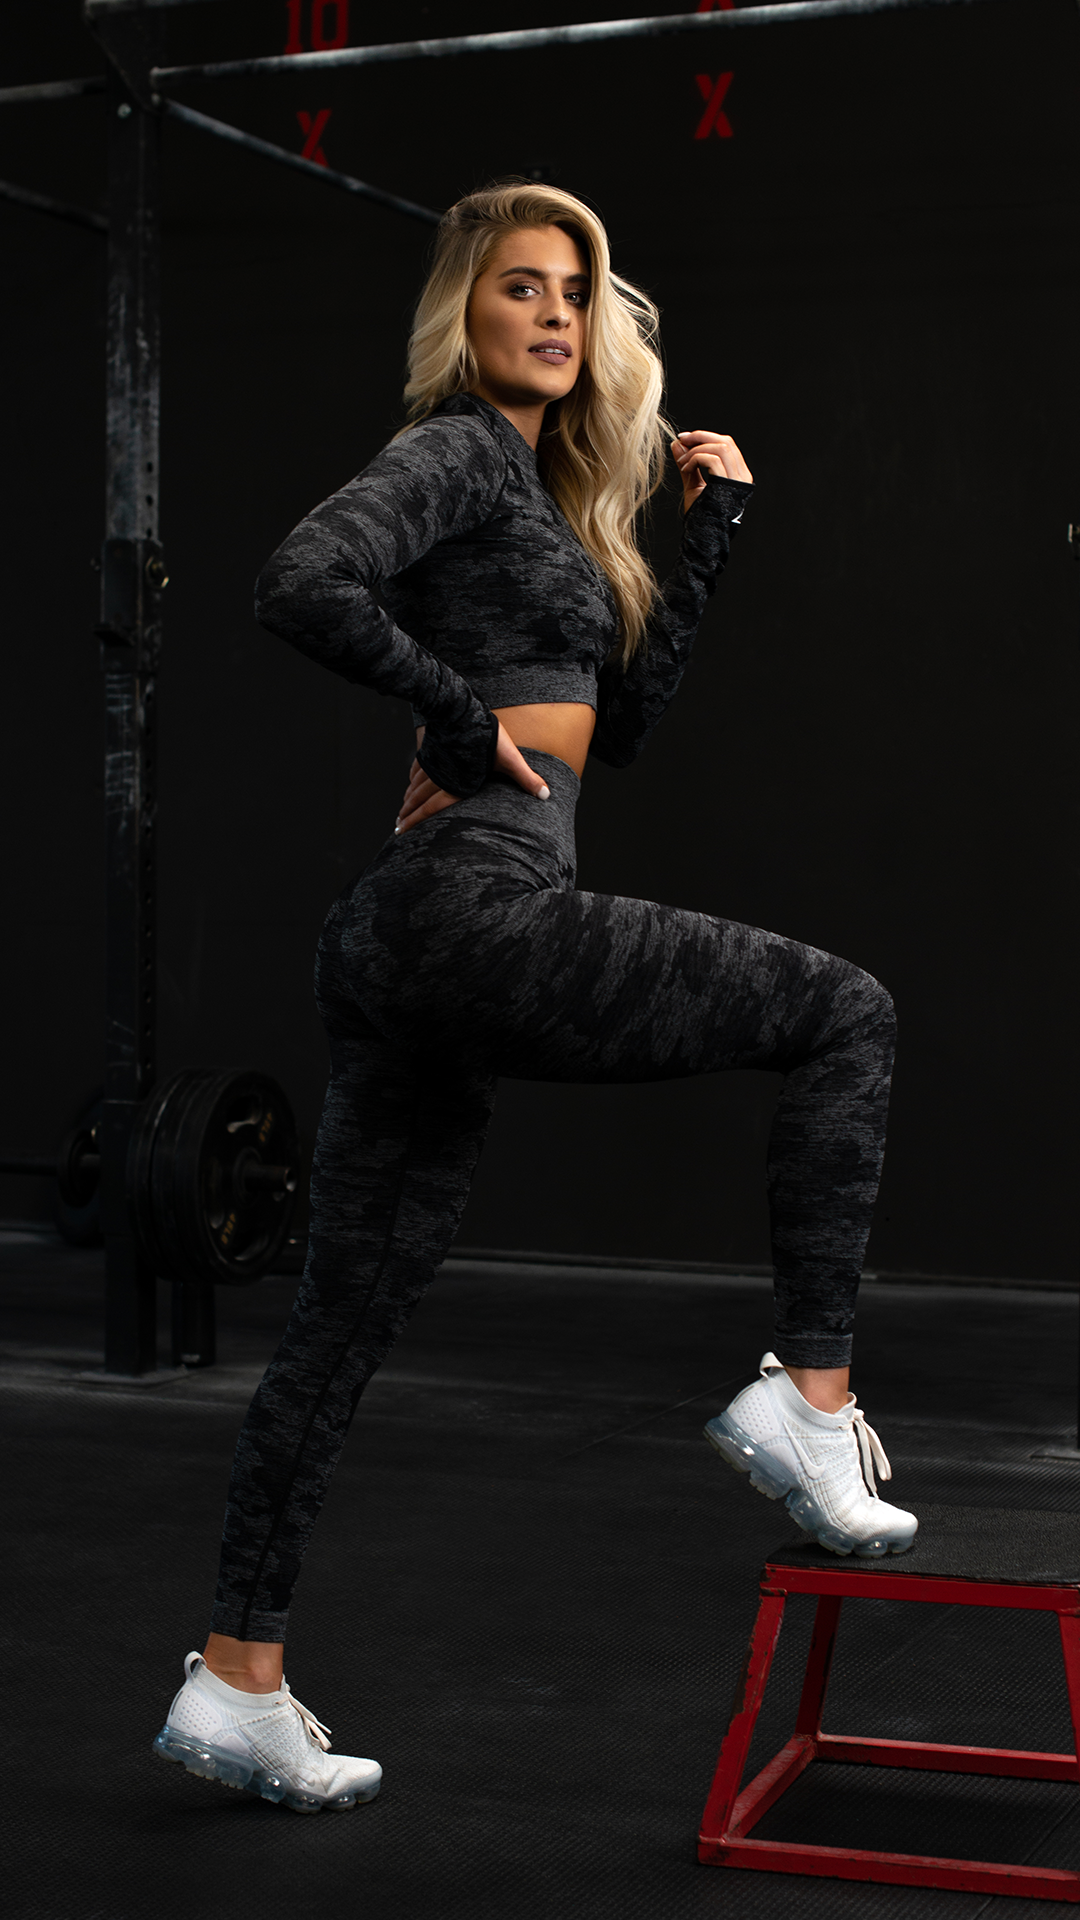 d31abcb5363509 Whitney Simmons, Gymshark Athlete works out in the gym in her favourite  collection, the Camo Seamless. #Gymshark #Gym #Sweat #Train #Perform # Seamless ...